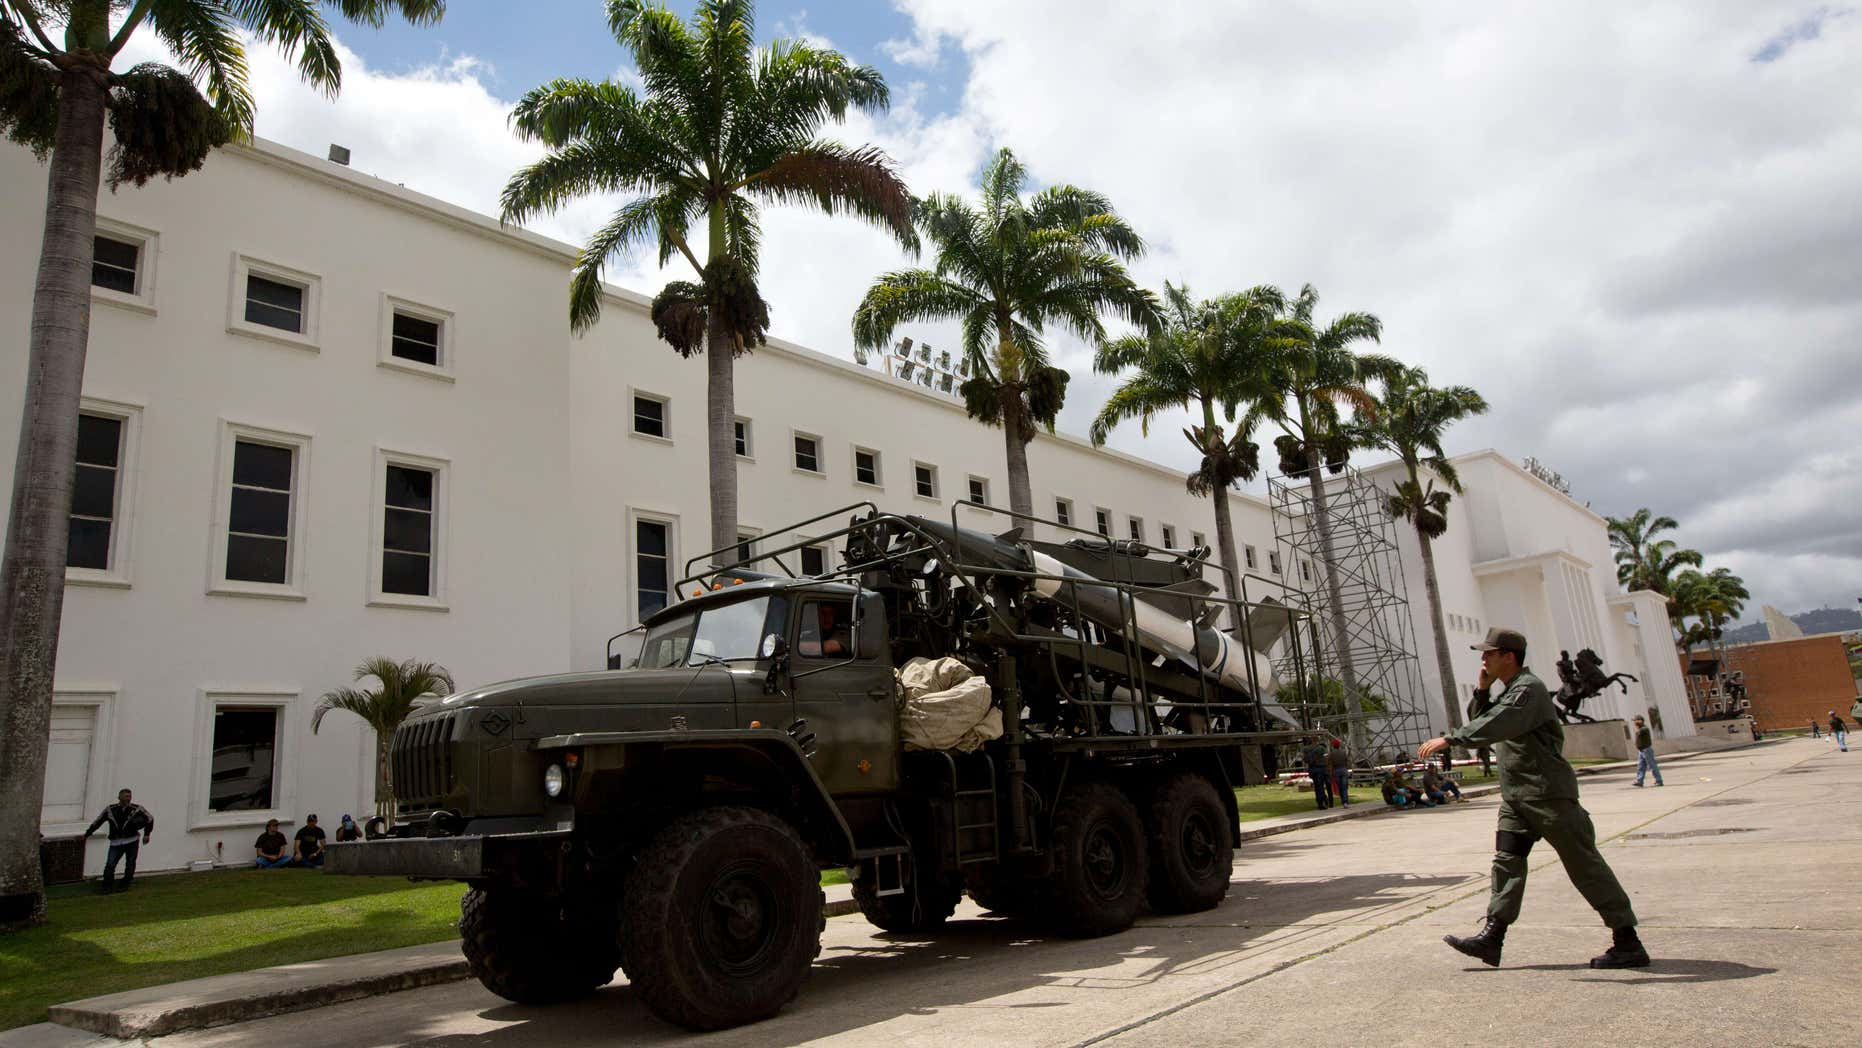 March 14, 2015: A Venezuelan army soldier walks next to a missile system launcher prior starting a civilian and military exercises at fort Tiuna in Caracas, Venezuela.